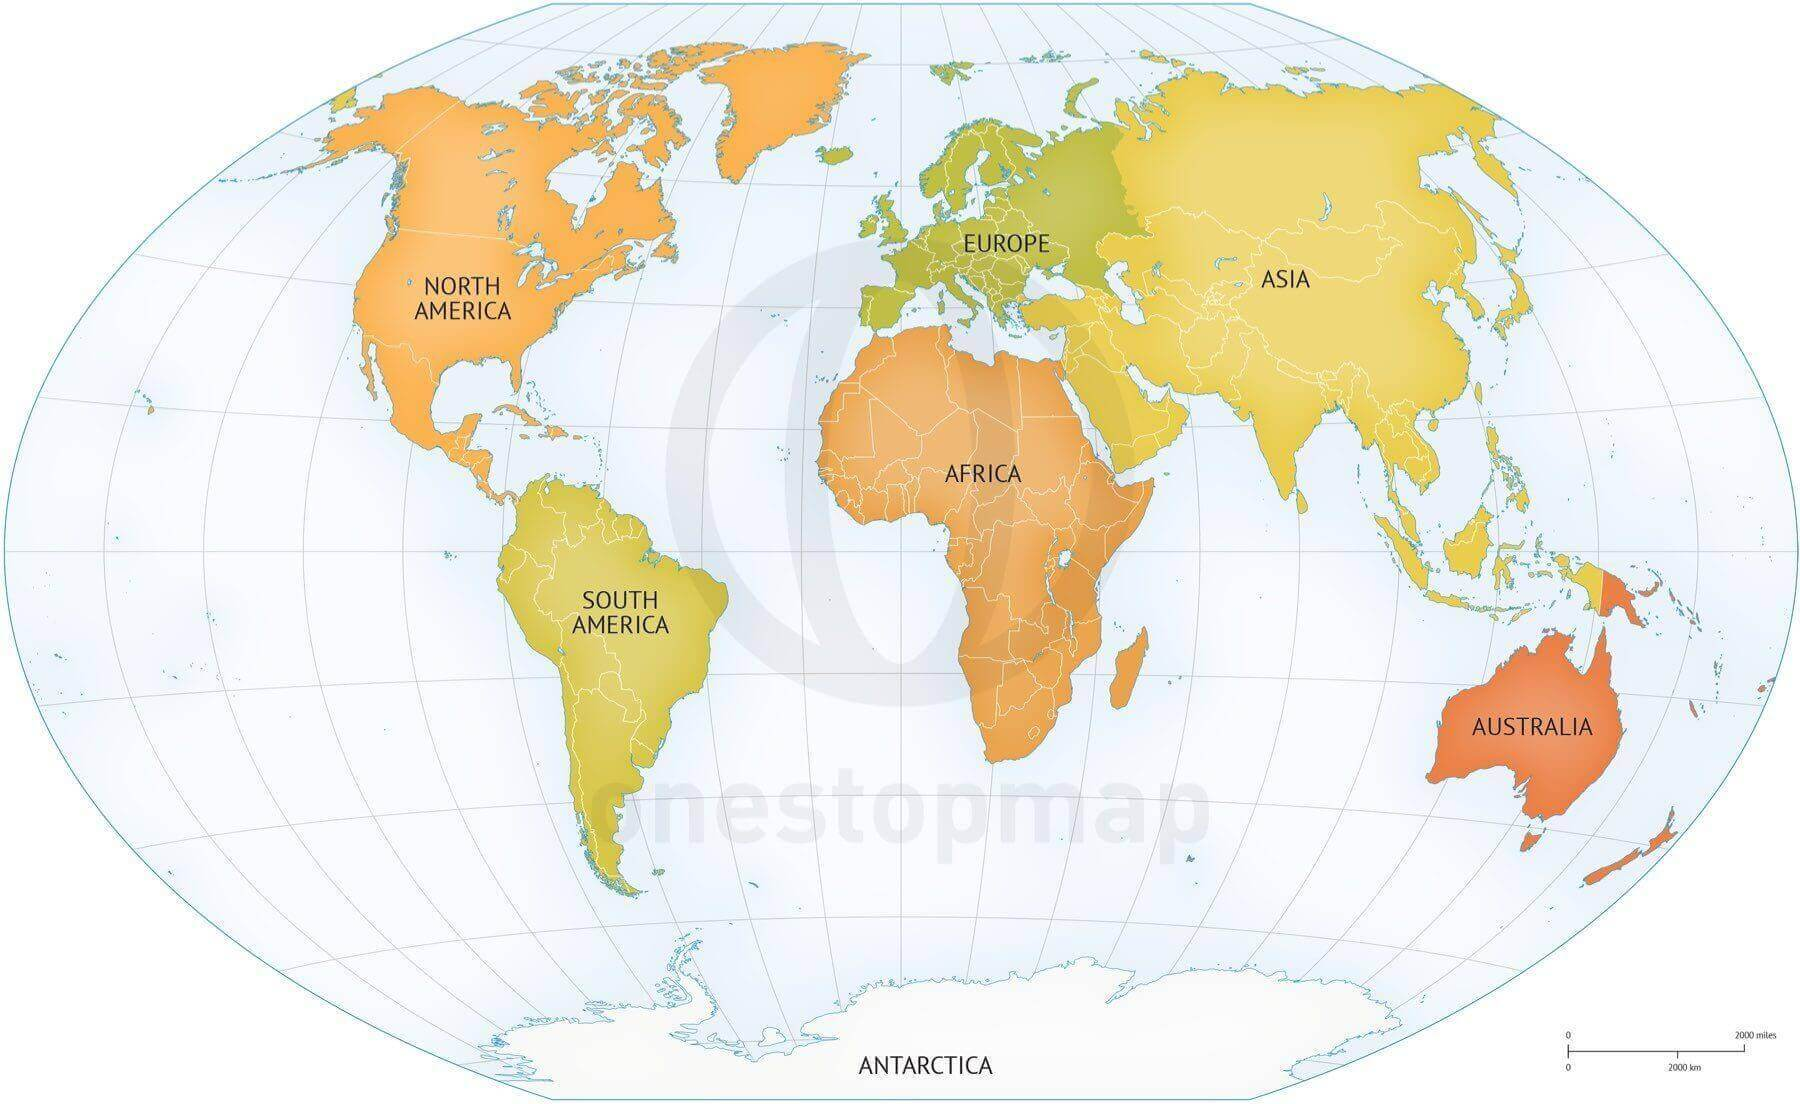 Vector map of world continents political one stop map 131 world continents political vm ckworld c5 1 gumiabroncs Choice Image